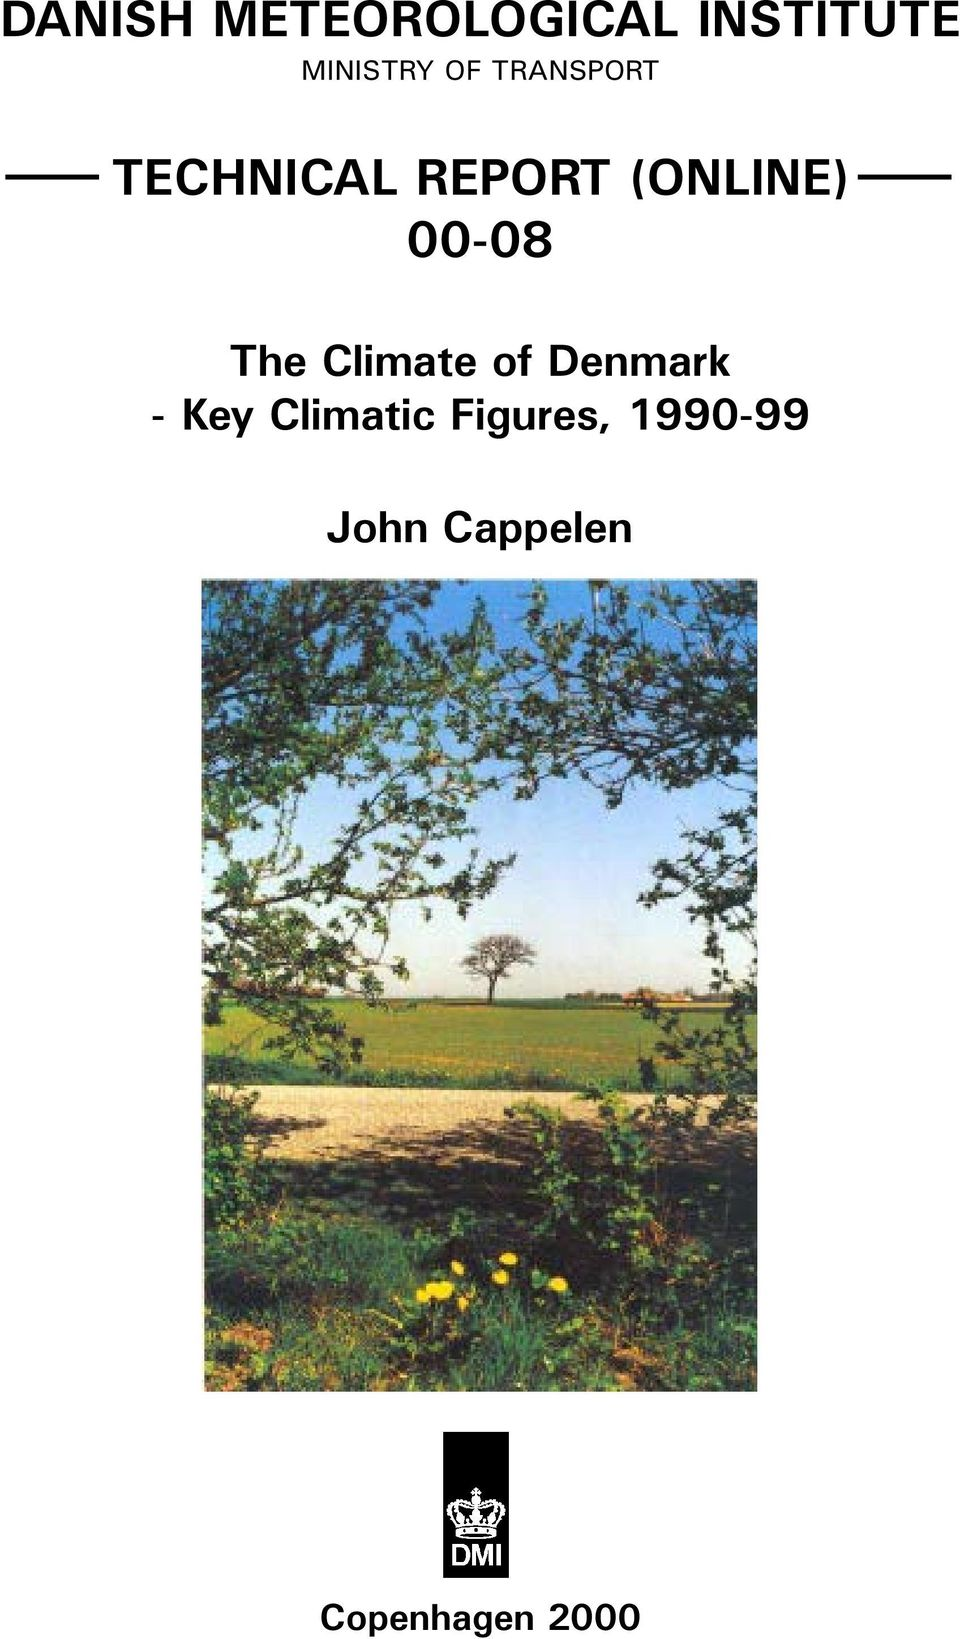 00-08 The Climate of Denmark - Key